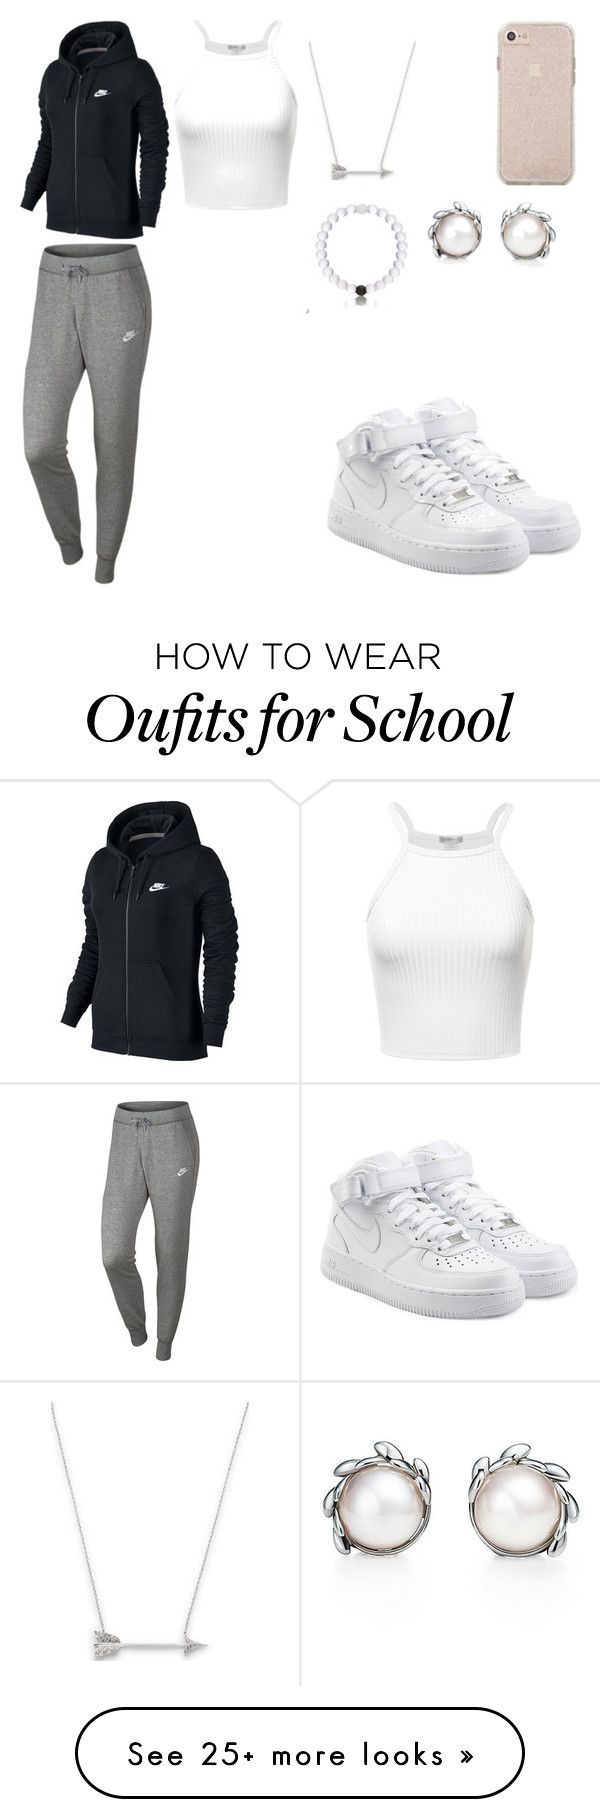 """HIGH SCHOOL STYLE"" by mgarcia-iii on Polyvore featuring NIKE, Tiffany & Co. and Estella Bartlett"